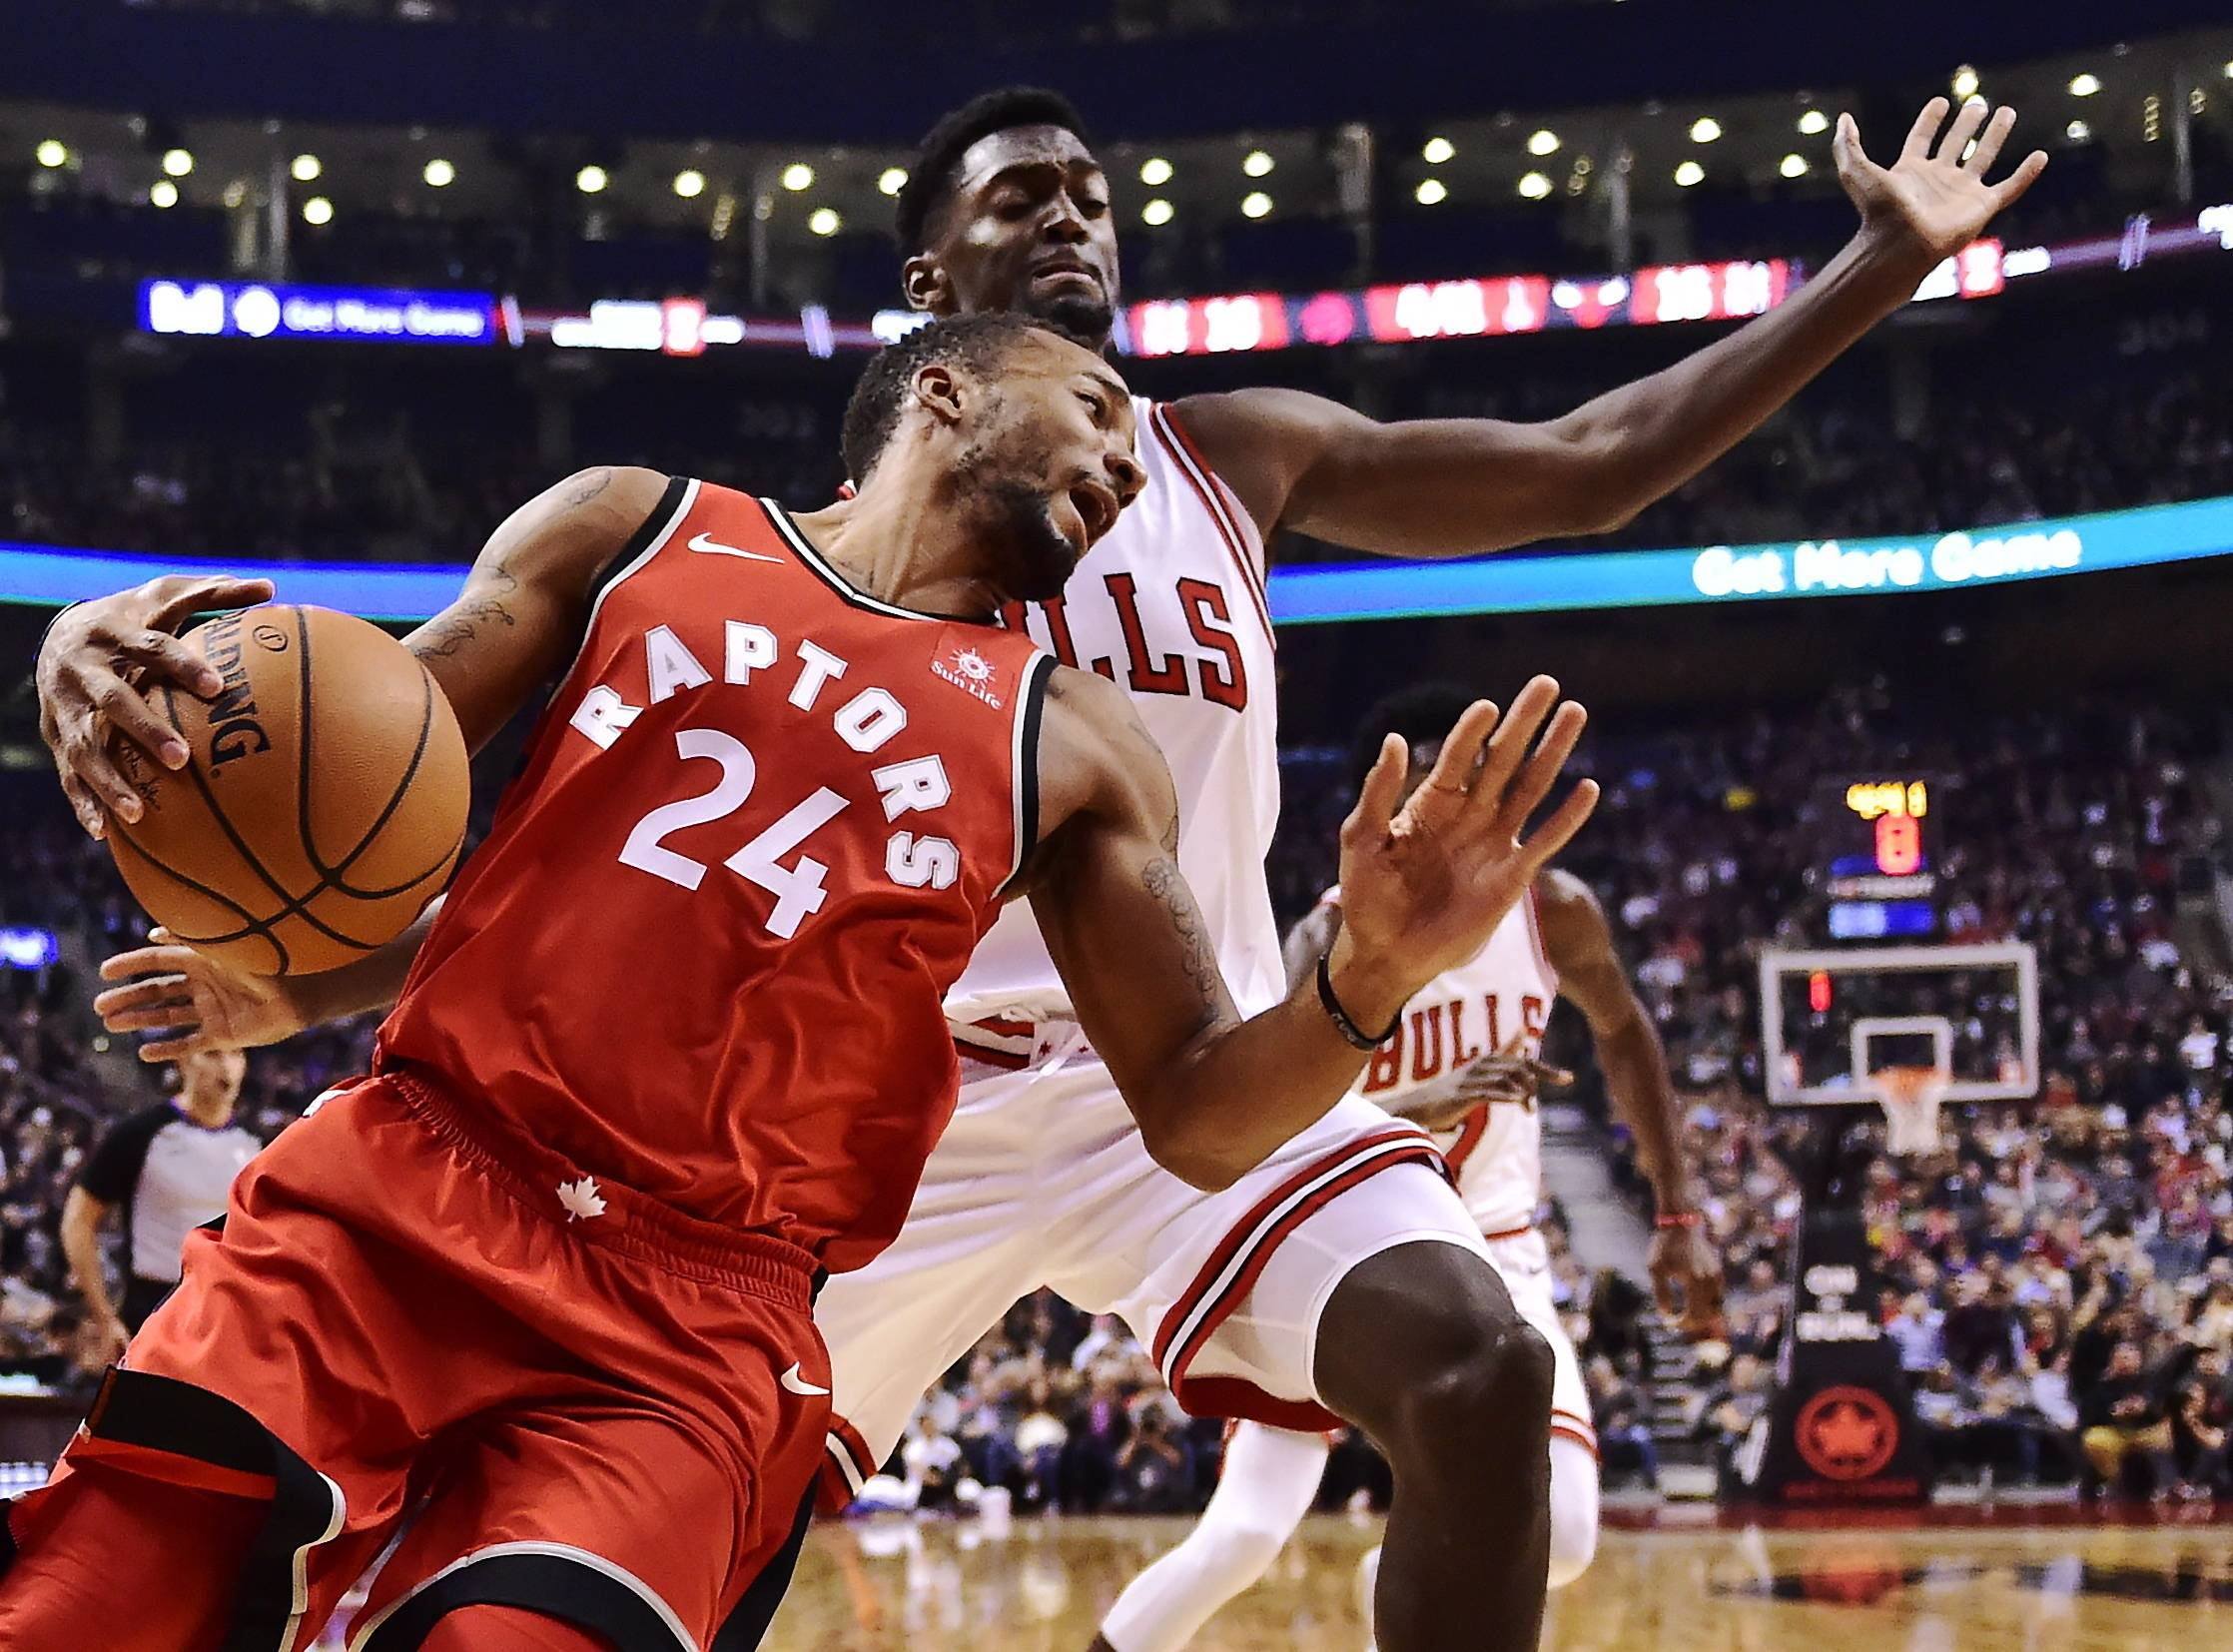 Portis shines in return from suspension, but Chicago Bulls lose at Toronto